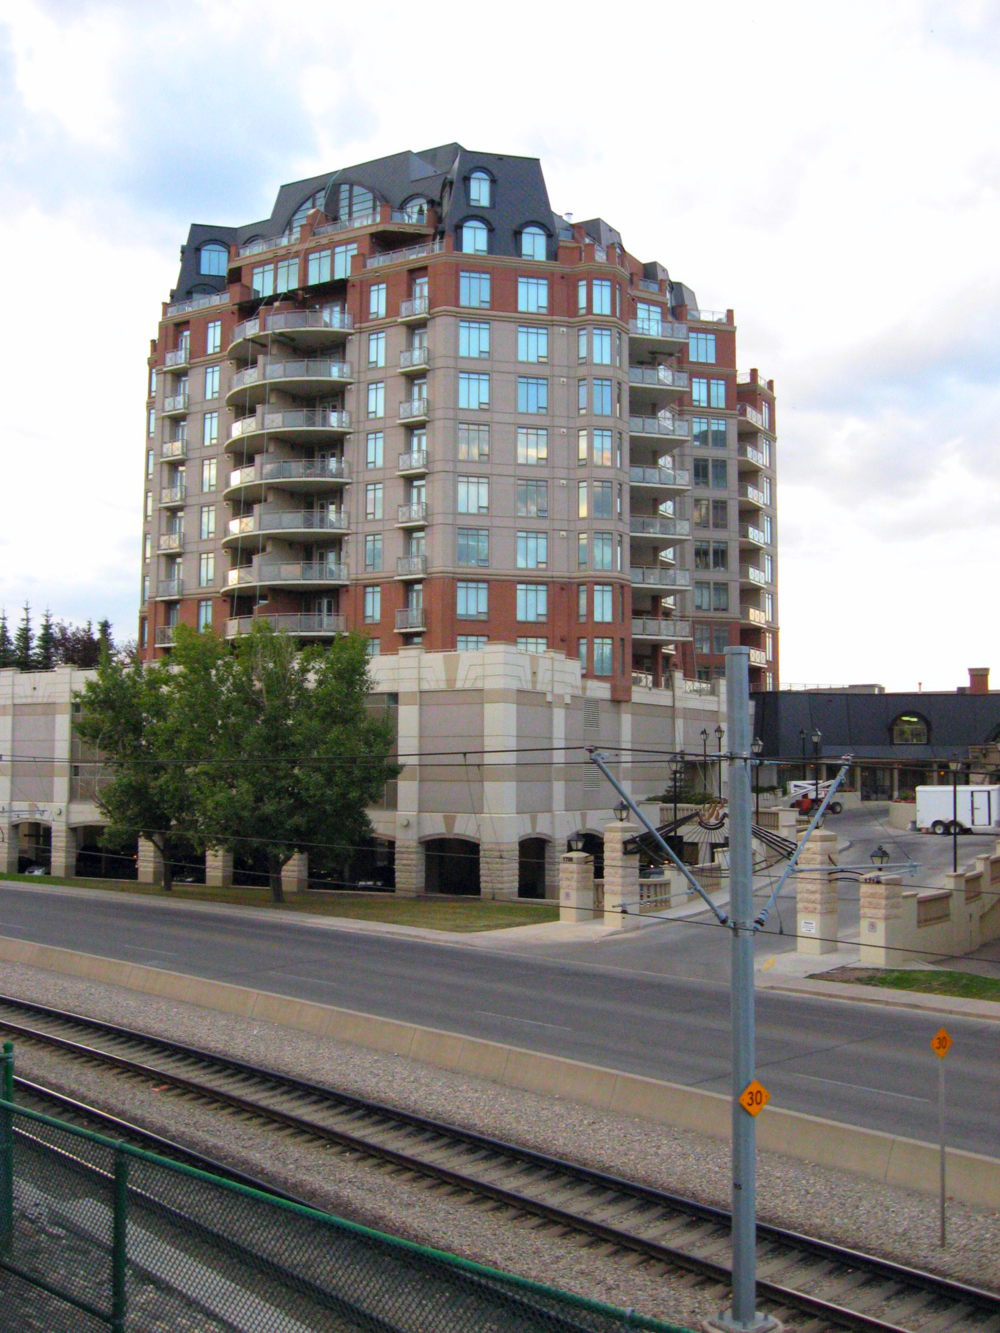 New condo development at the Lions Park LRT Station with direct link to North Hill Shopping Centre, Safeway and public library.